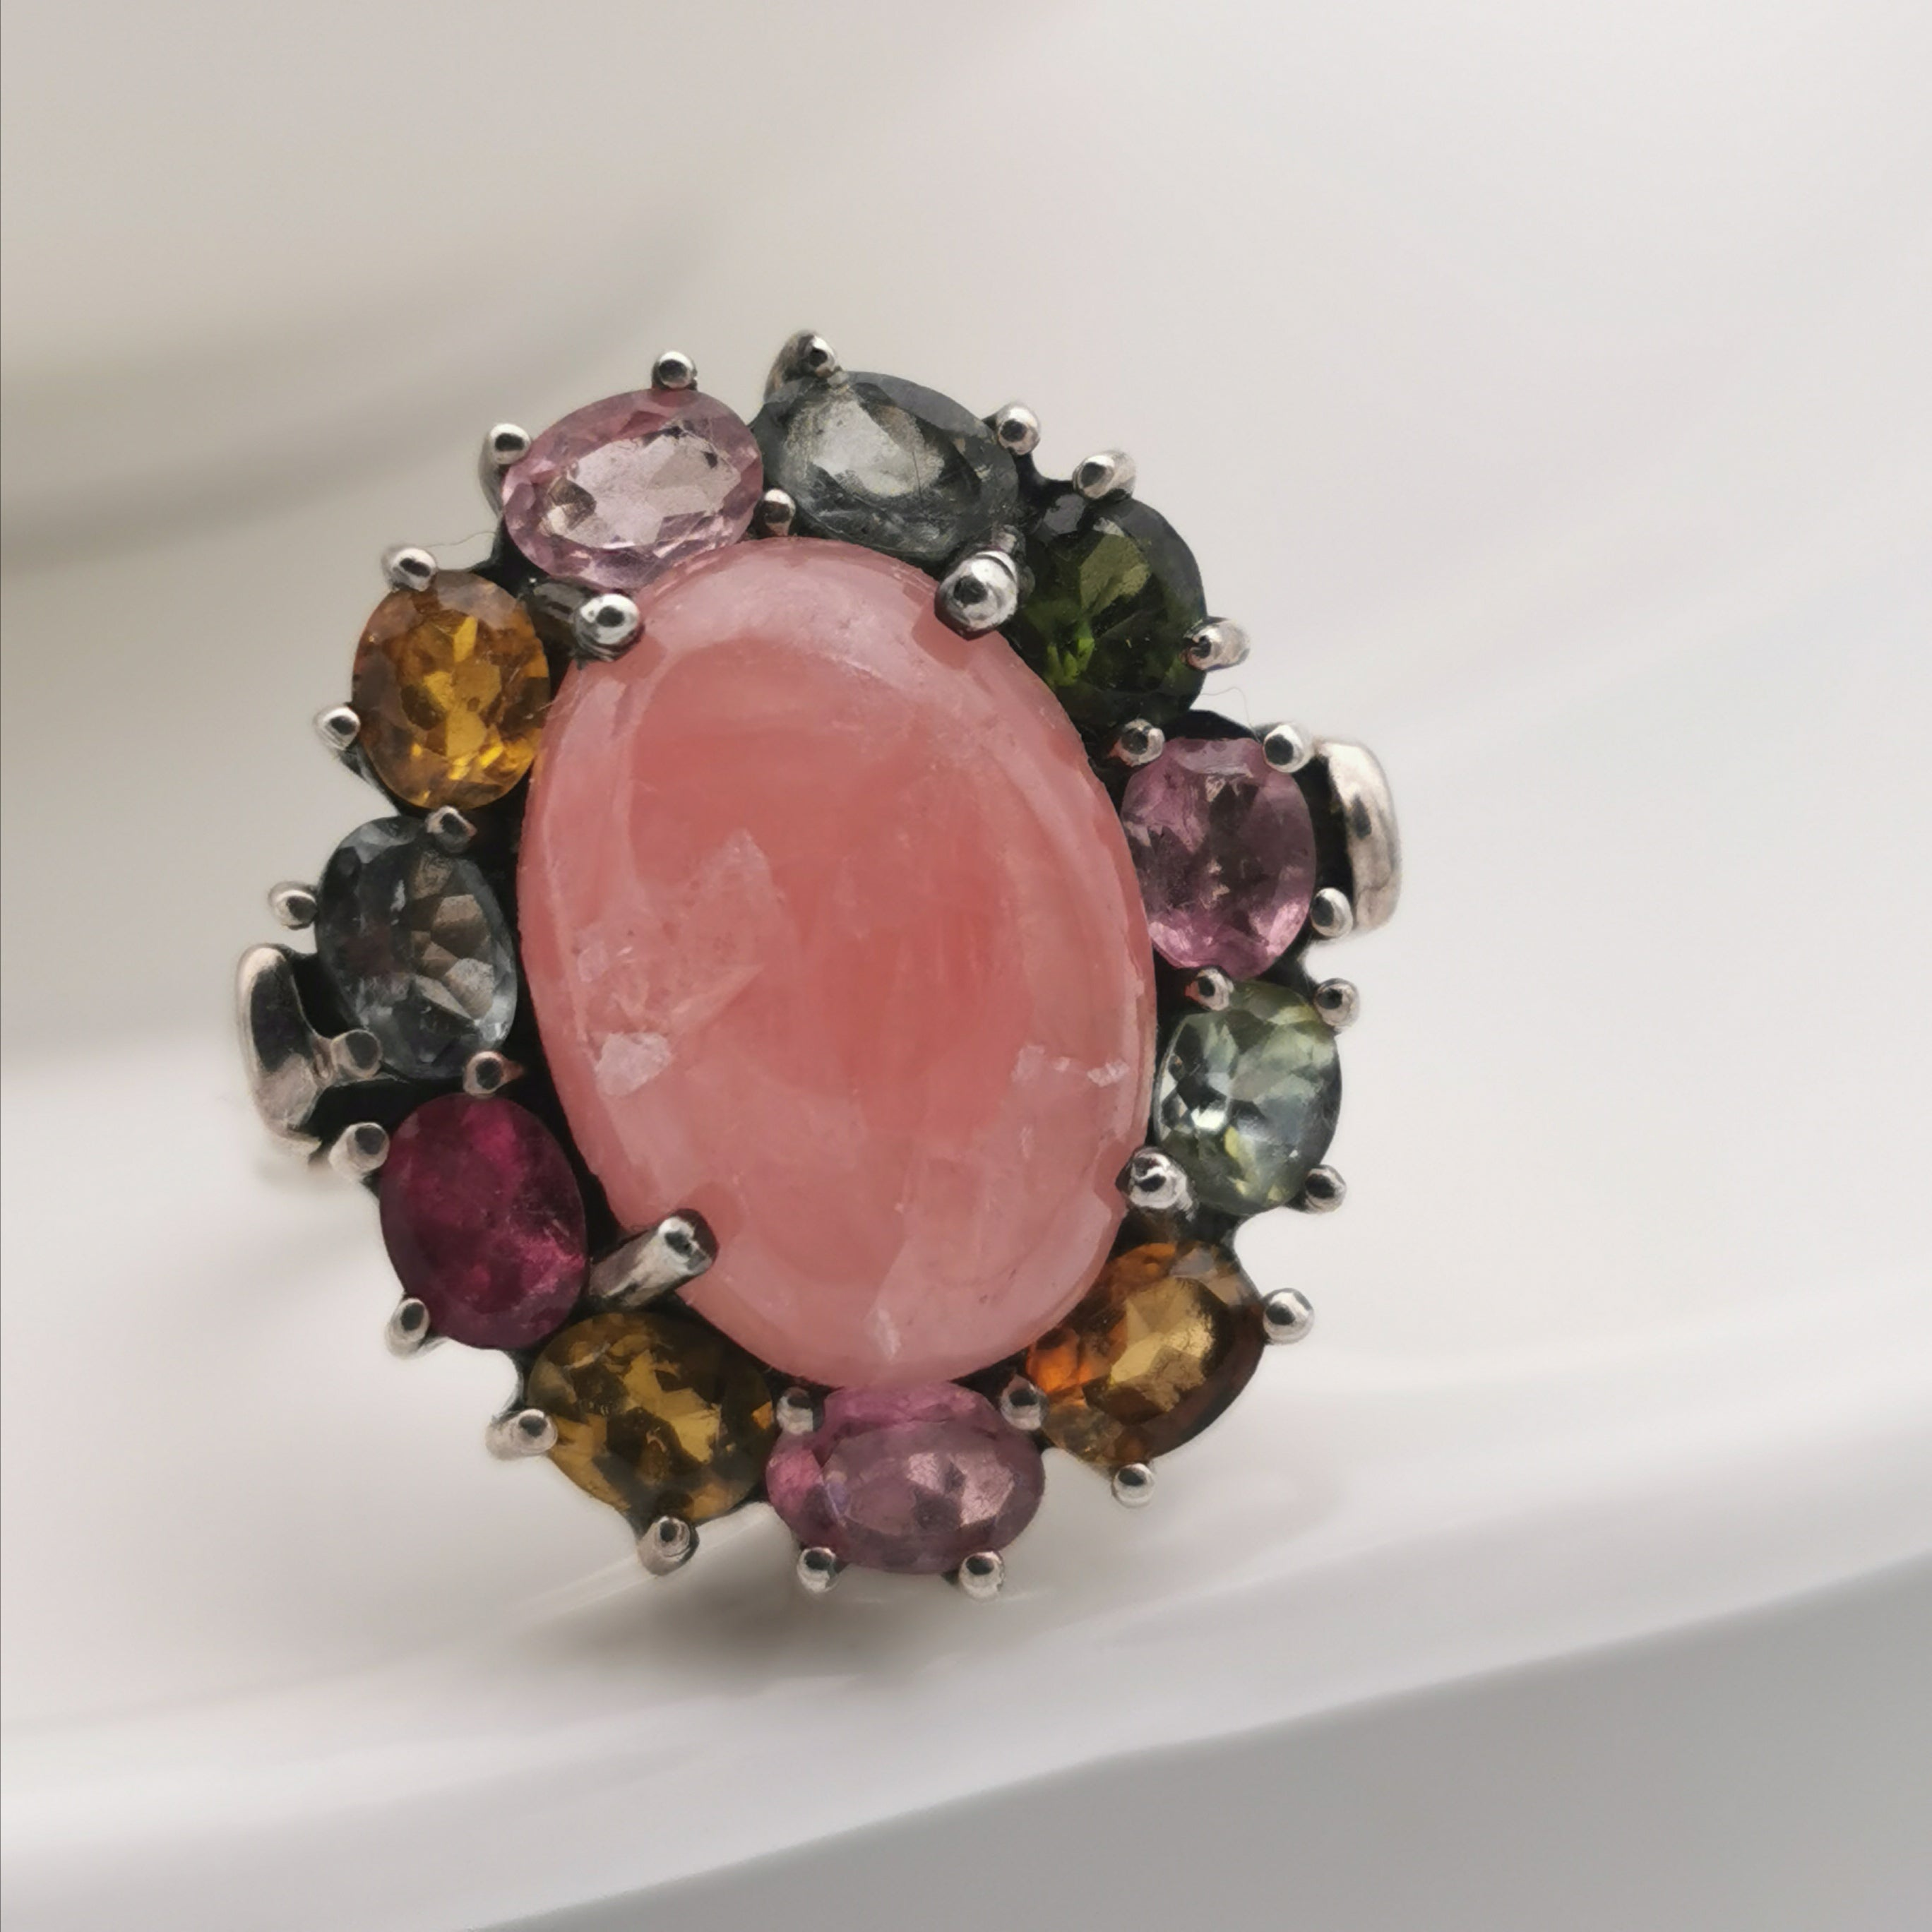 Sterling silver with rhodochrosite tourmaline ring